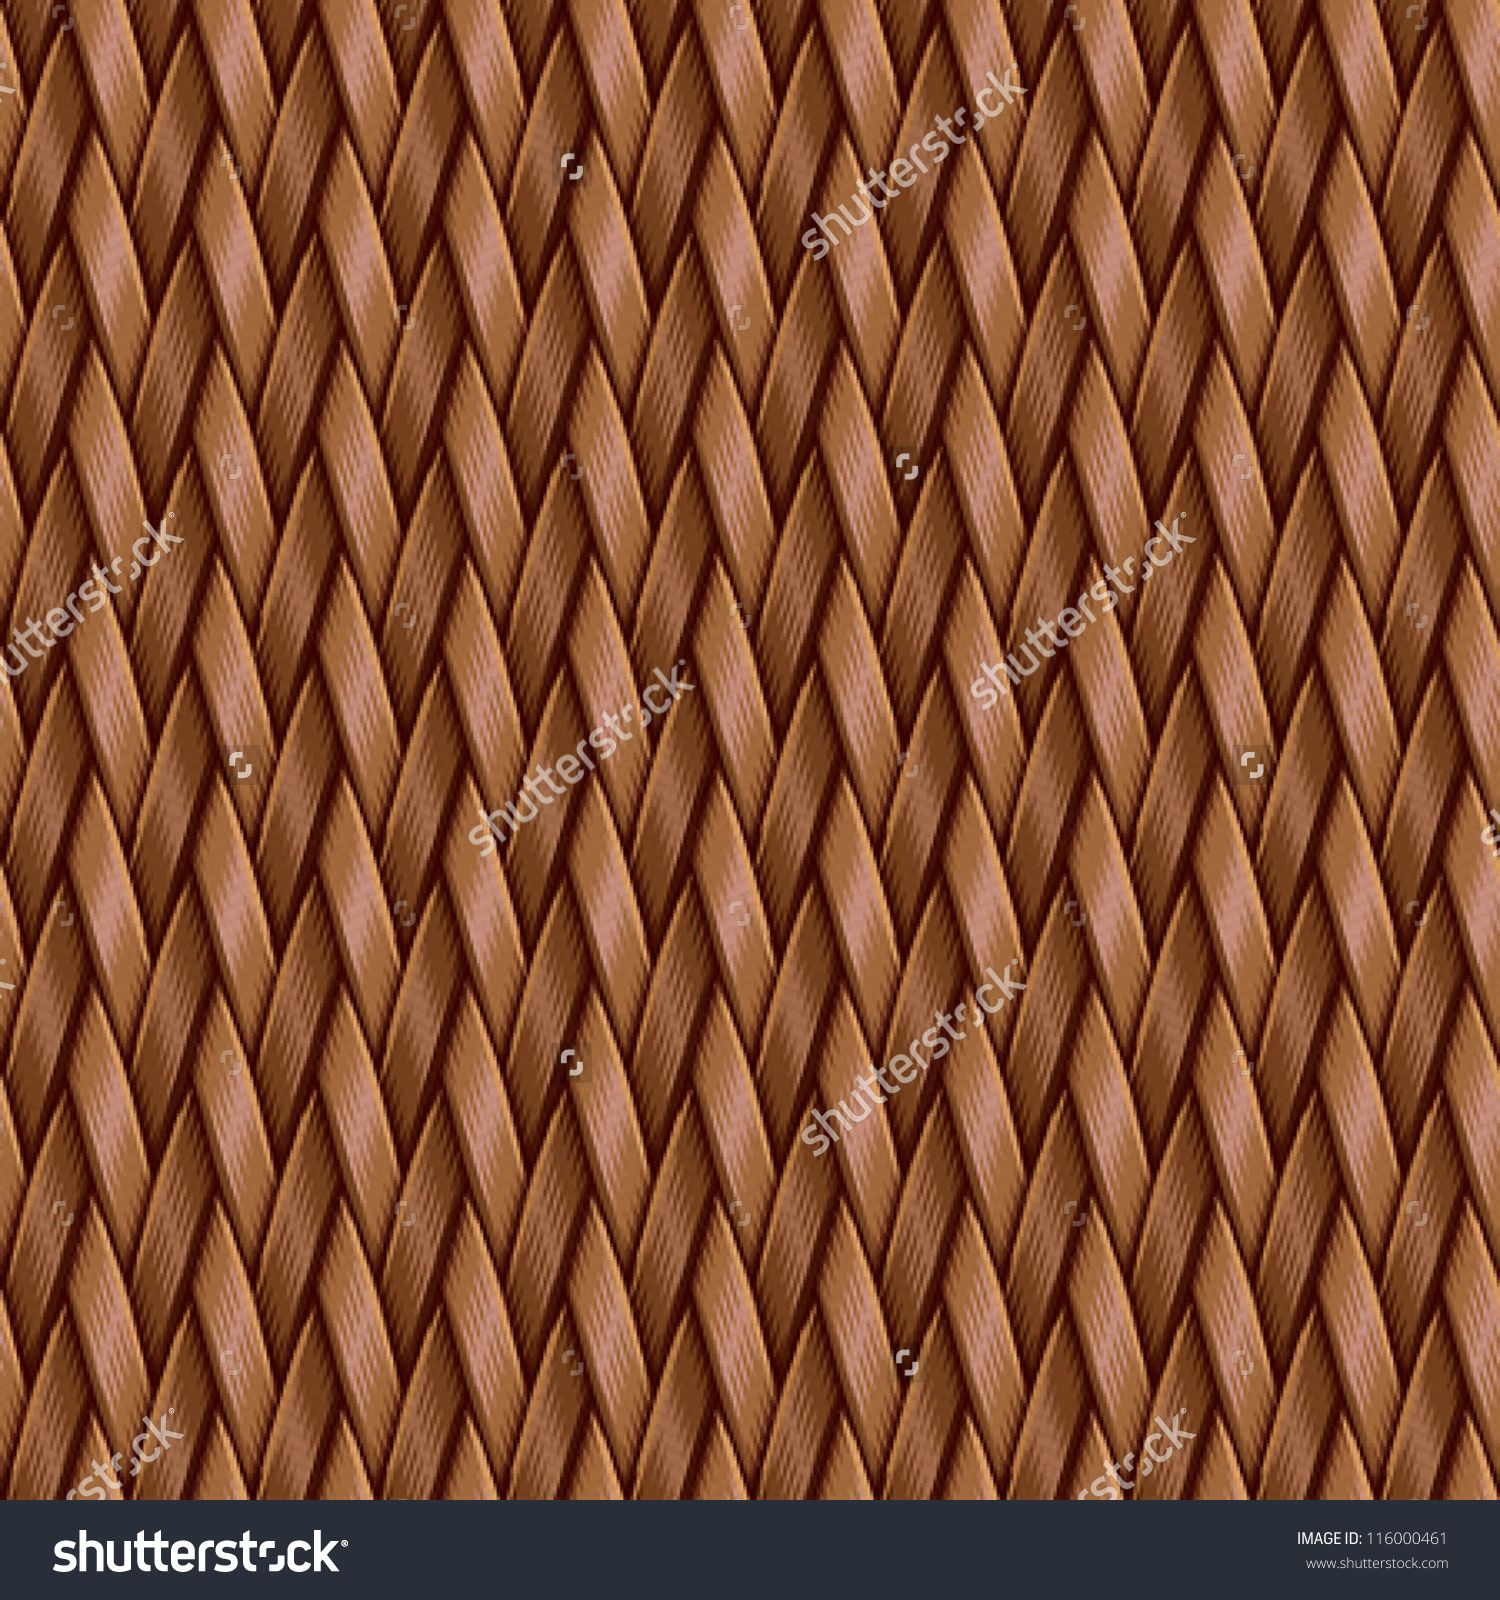 Image Result For Basket Weave Pattern